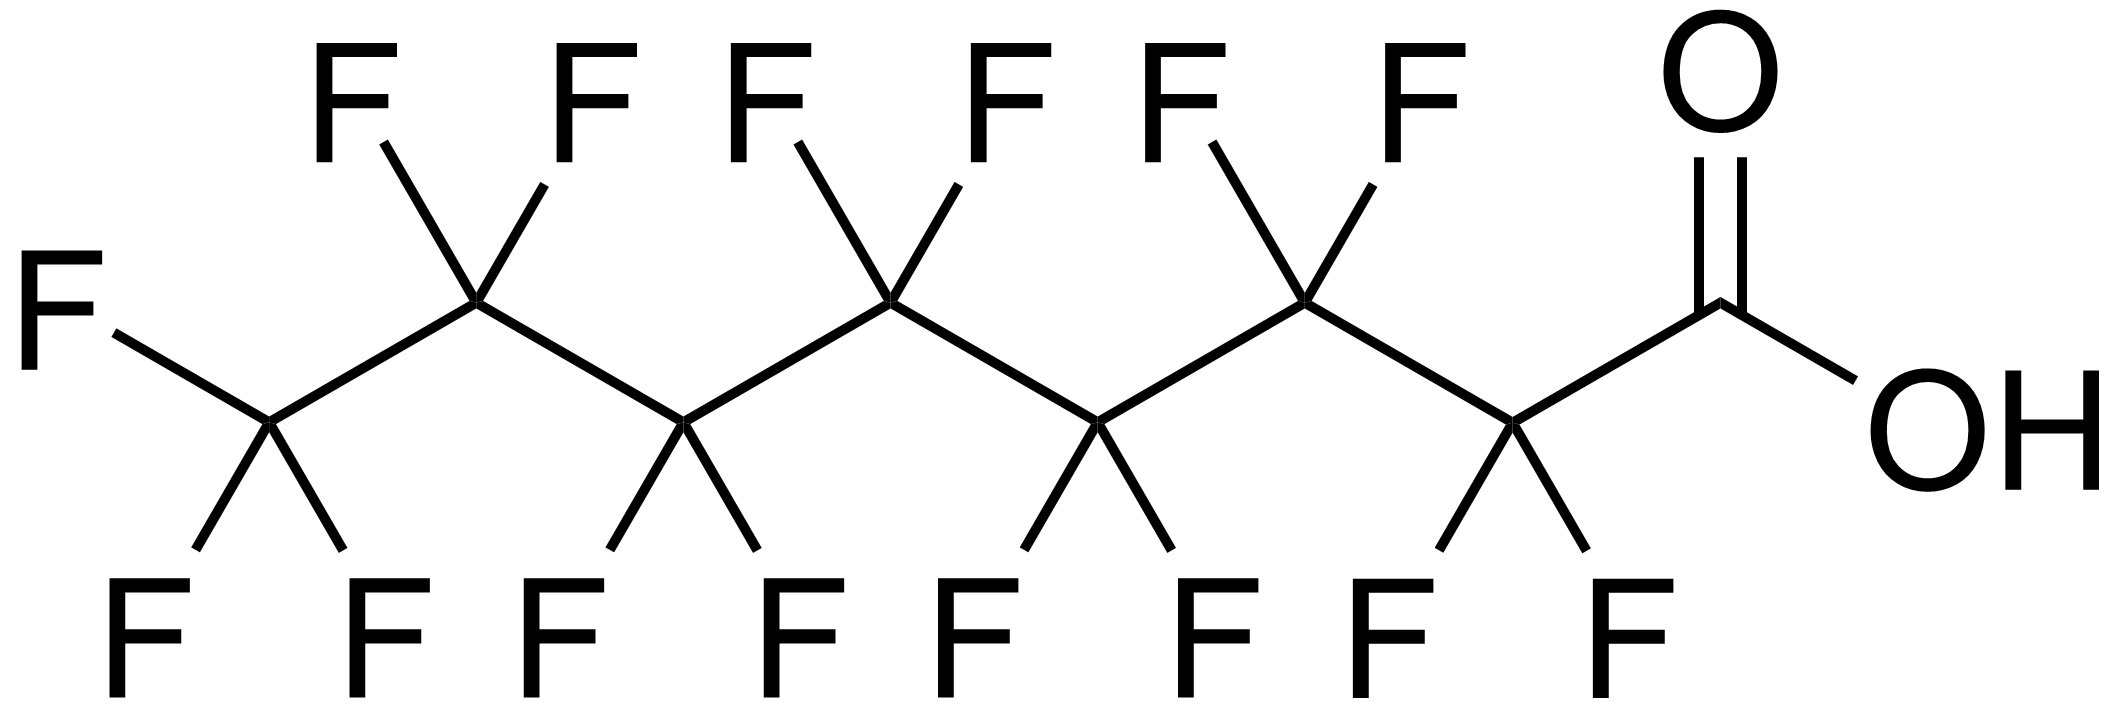 Perfluorooctanoic acid - Wikipedia